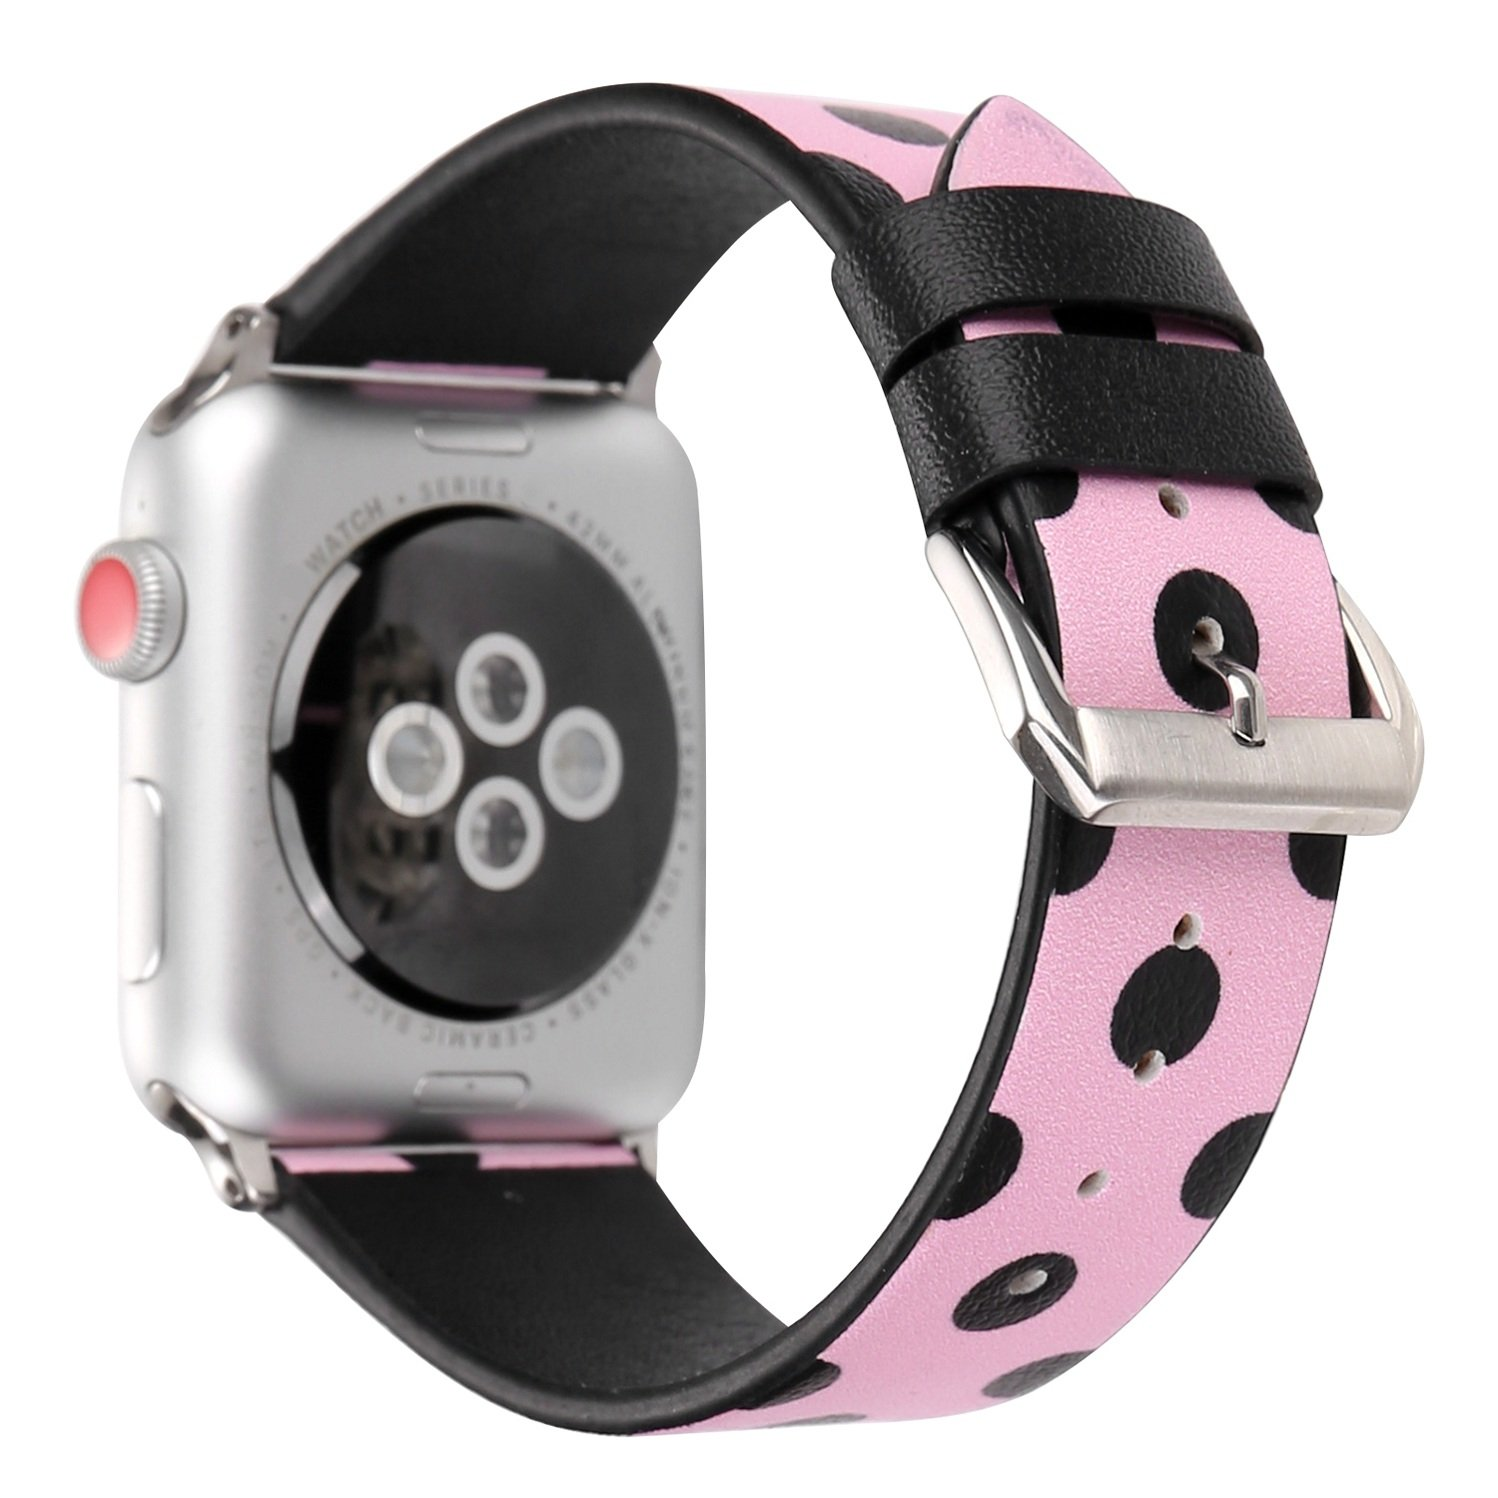 Juzzhou Band For Apple Watch iWatch Series 3/2/1 Sport Edition Leather Replacement Bracelet Wristband Wriststrap Watchband Wrist Strap With Metal Adapter Adjustable Buckle For Woman Girl Pink 38mm by Juzzhou (Image #1)